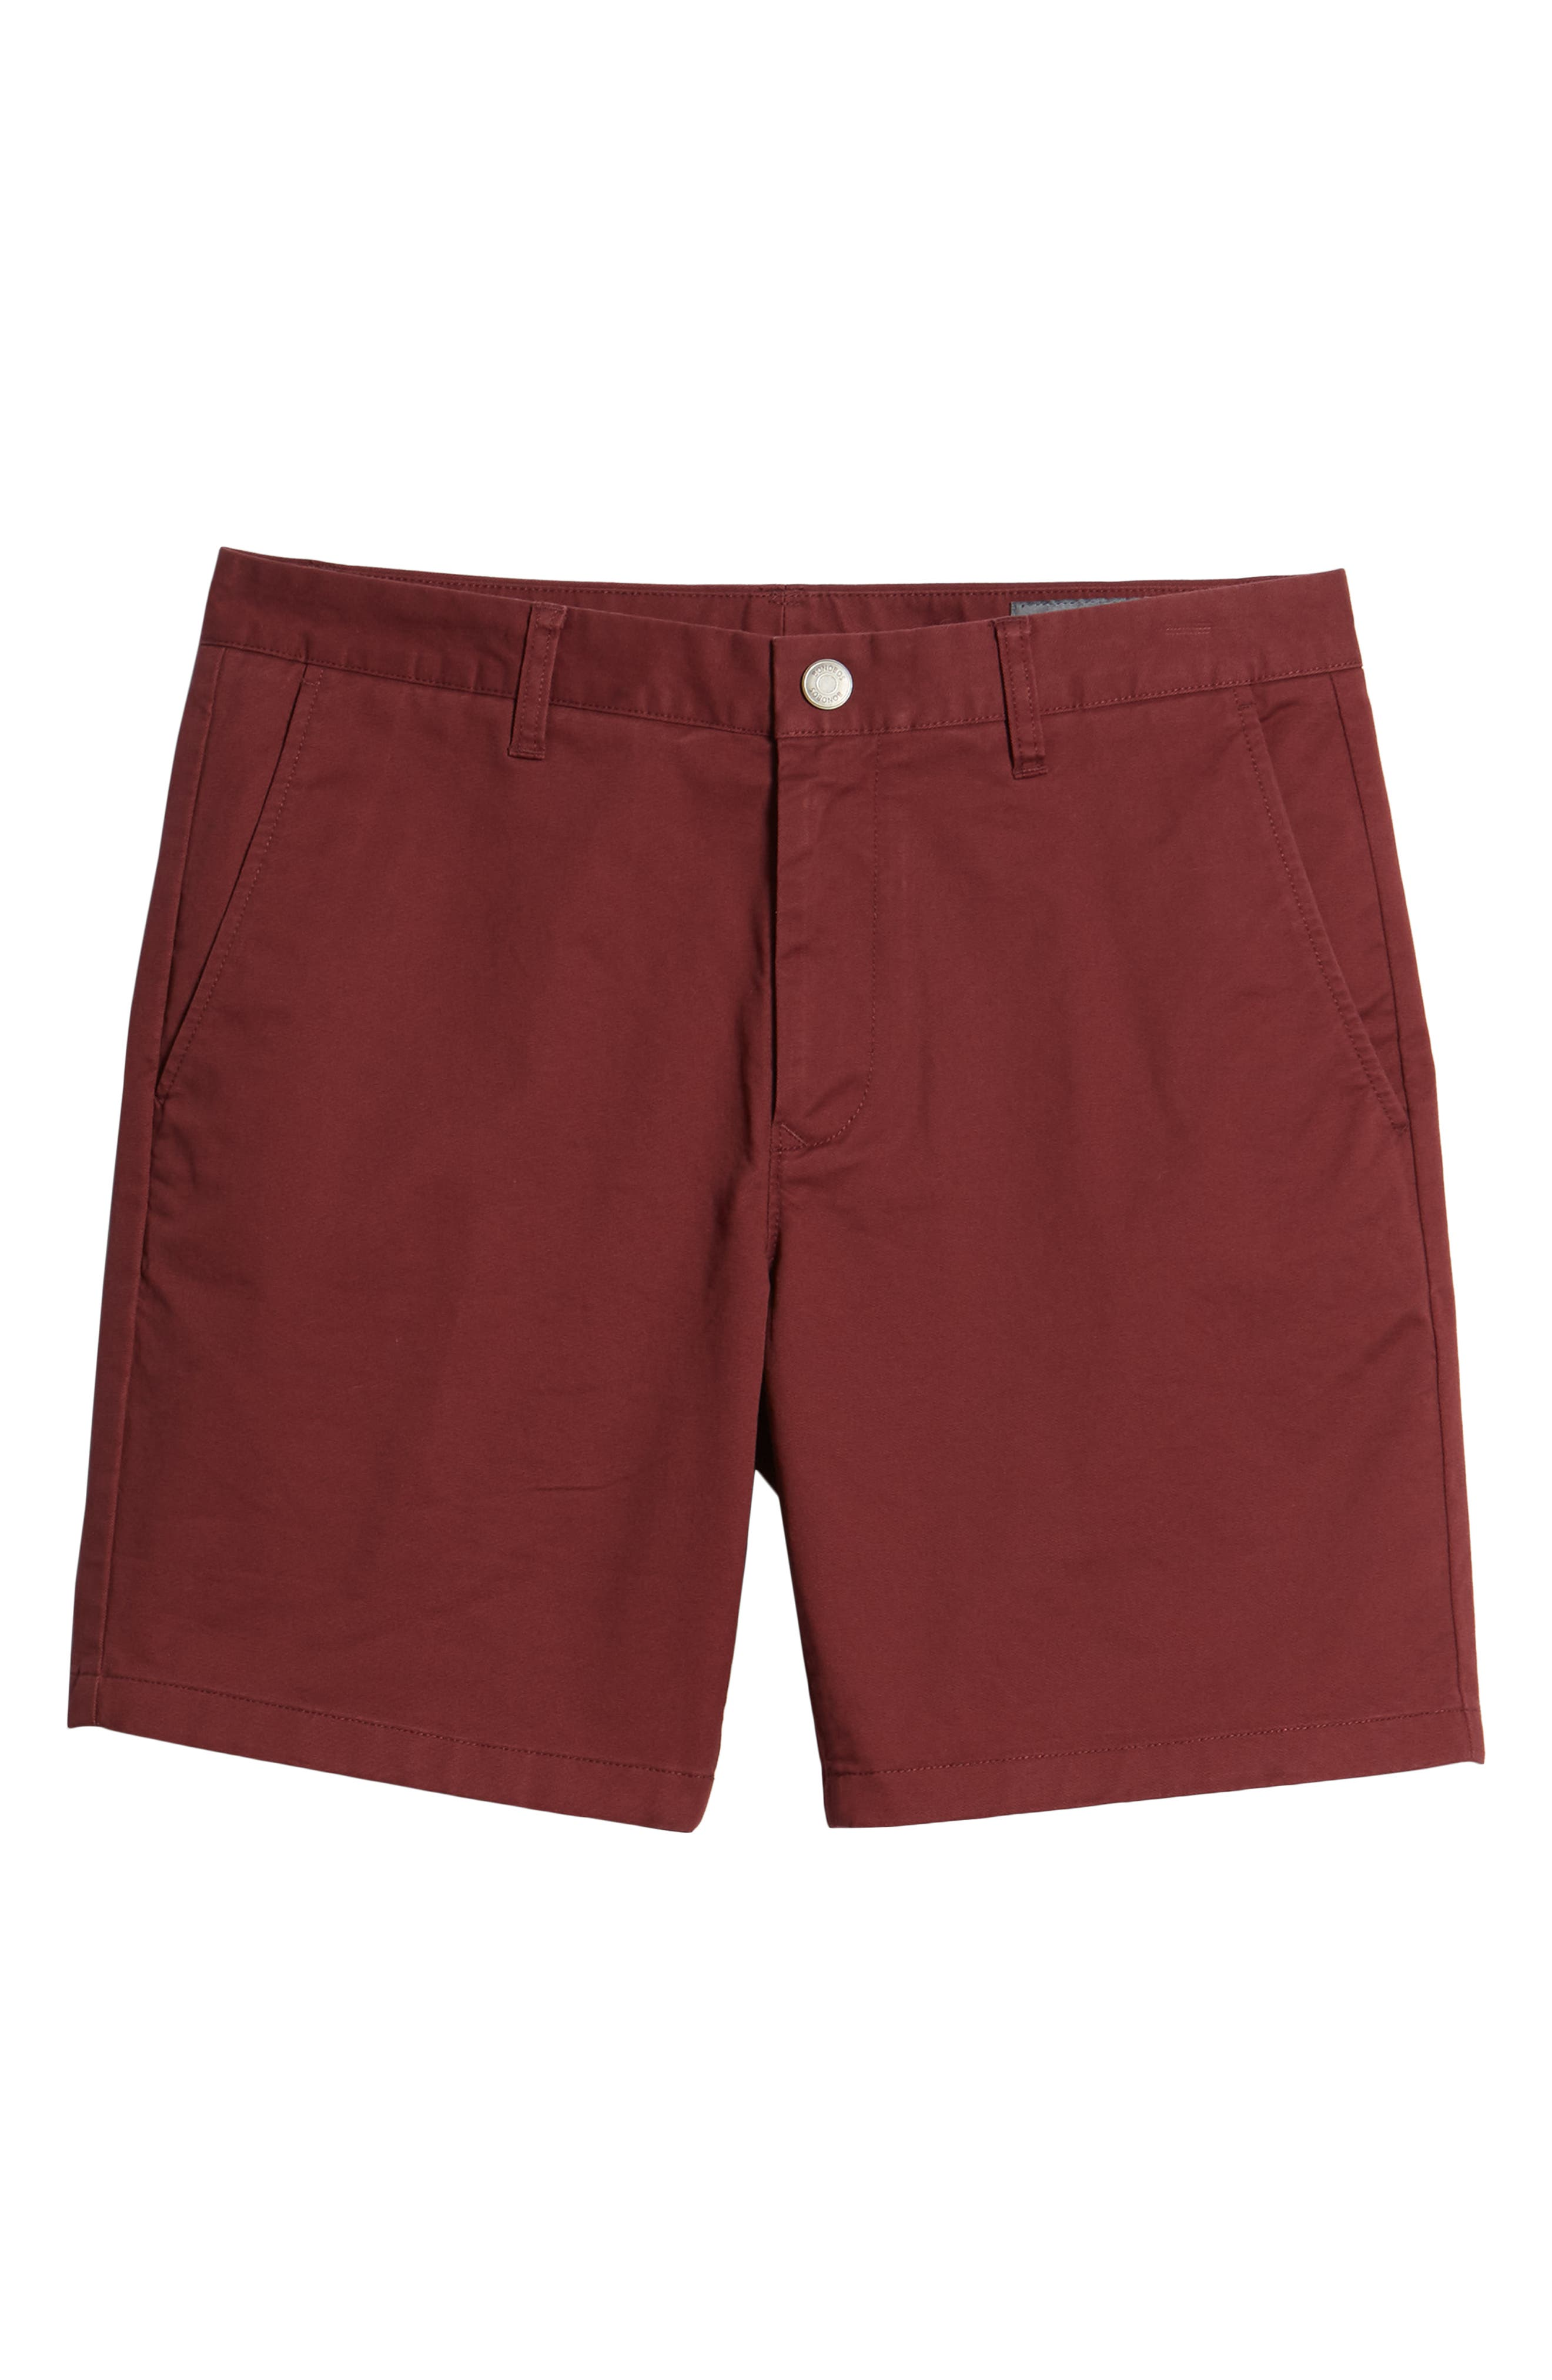 Stretch Chino 7-Inch Shorts,                             Alternate thumbnail 73, color,